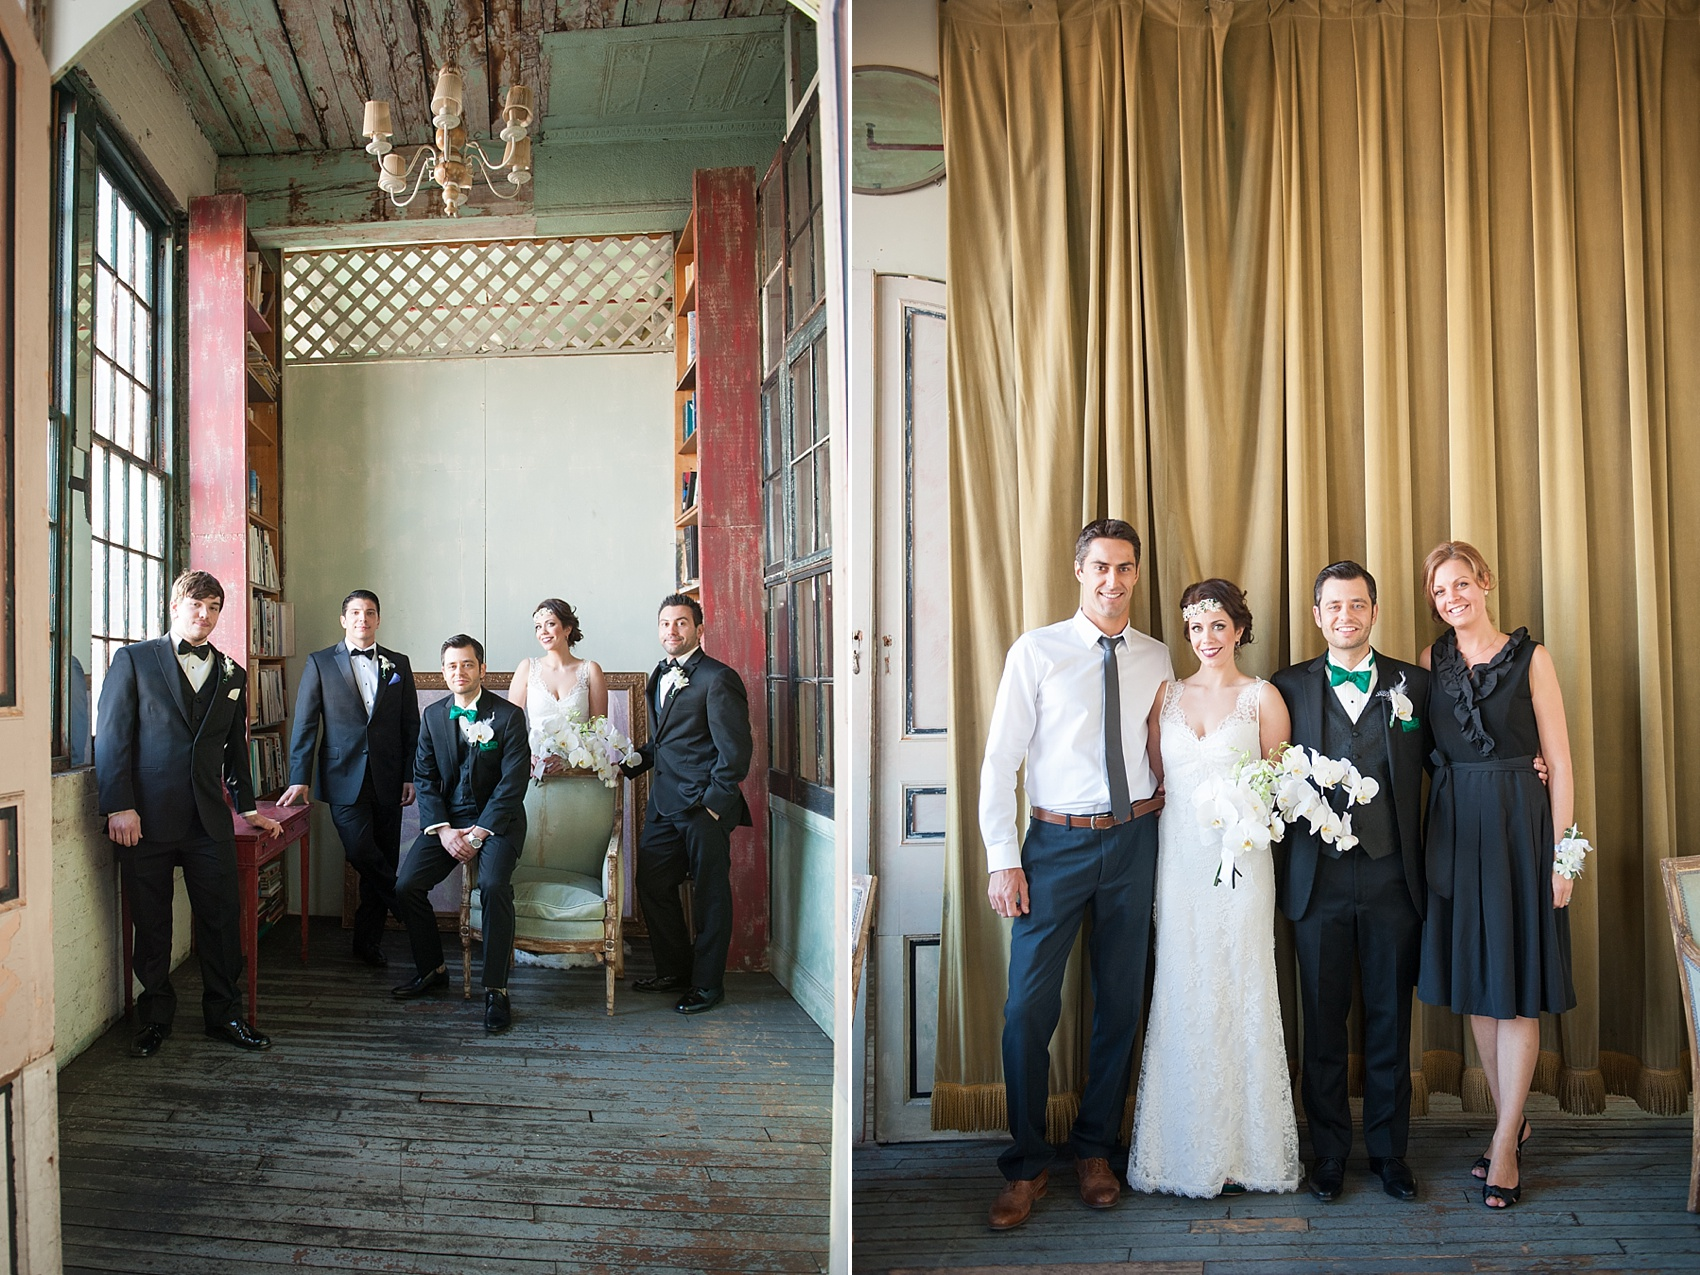 Wedding party portraits at the Metropolitan Building vintage 1920's wedding. Images by Mikkel Paige Photography.